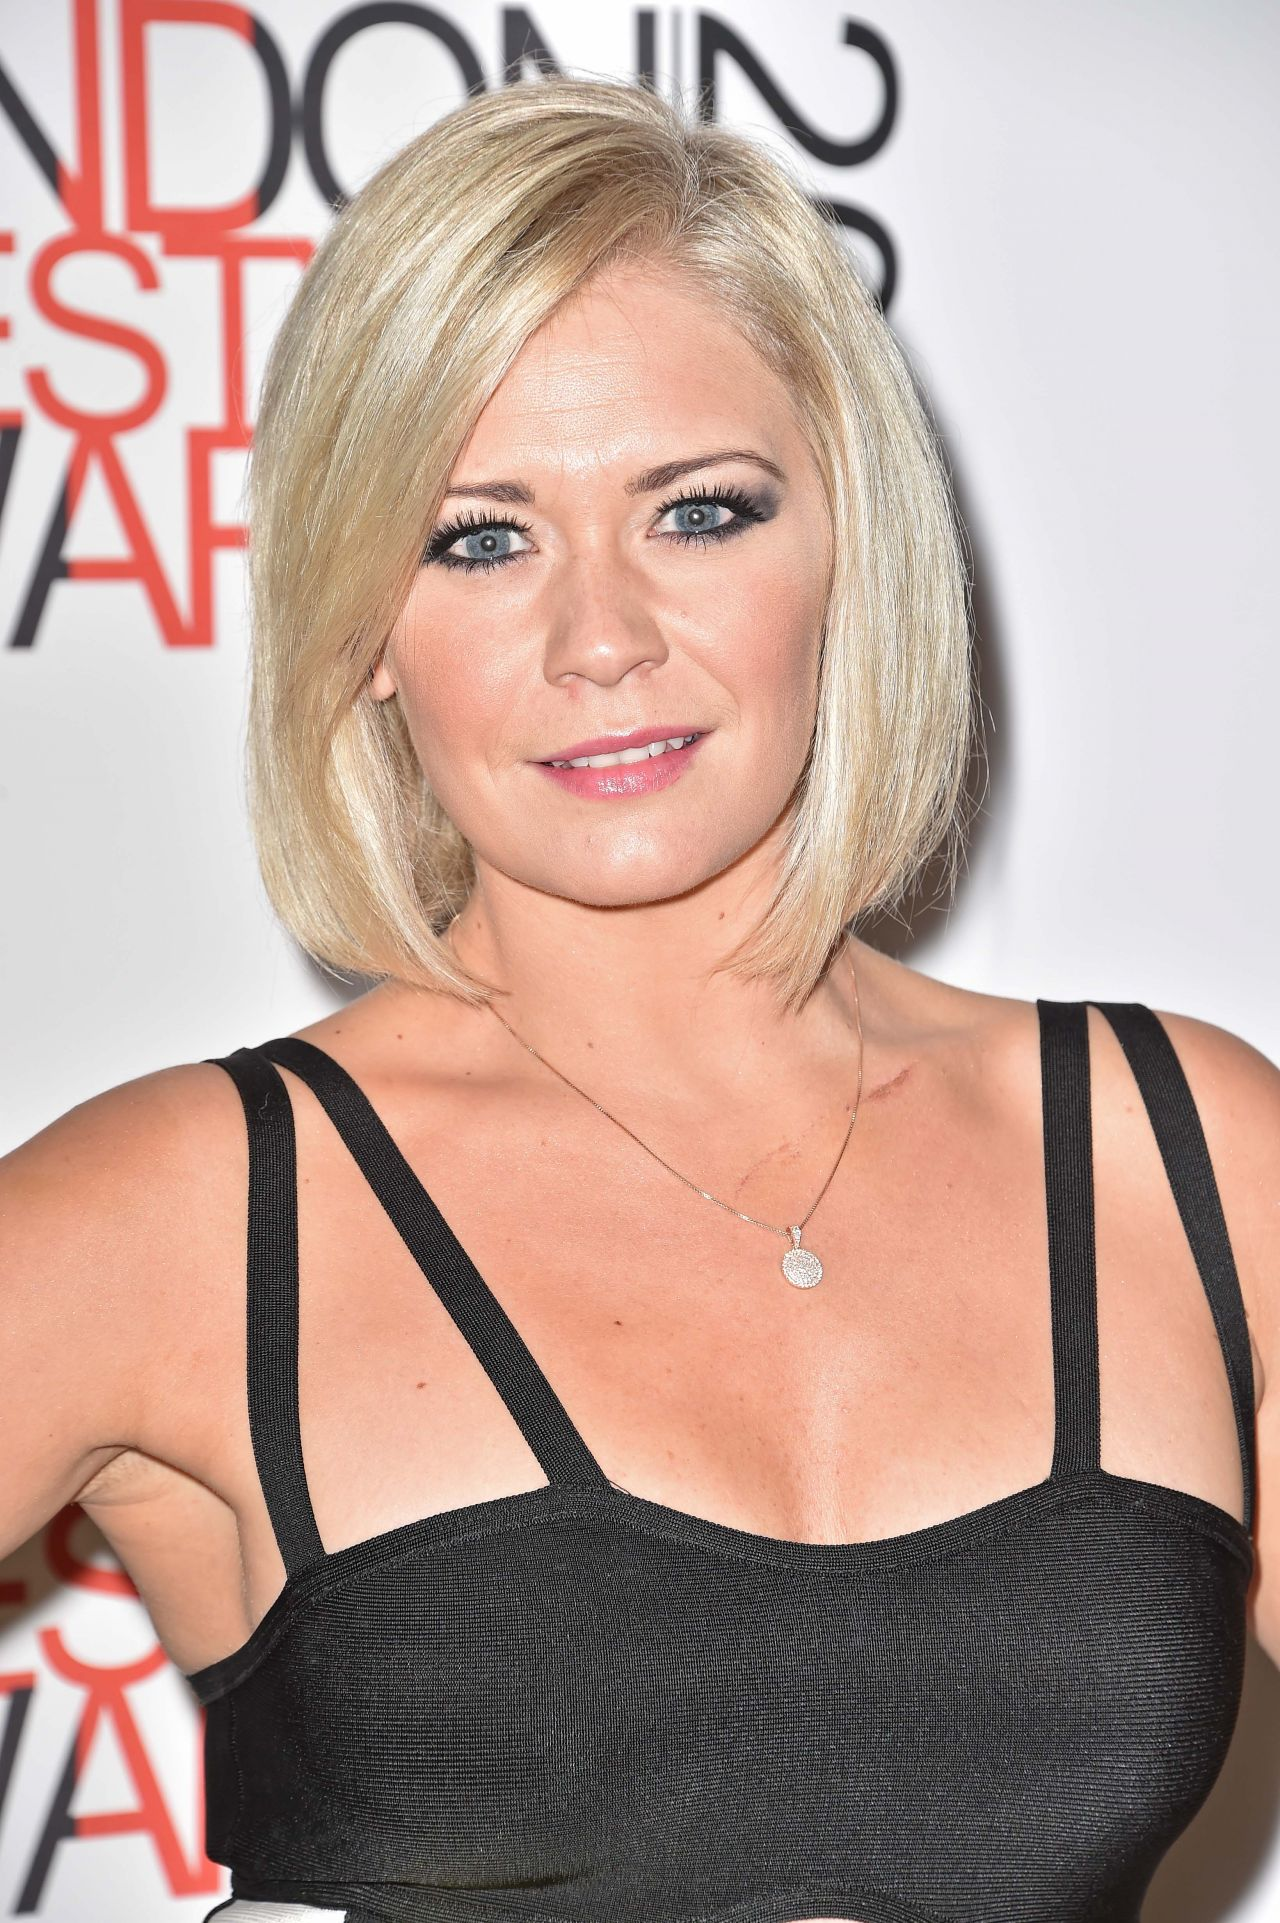 suzanne shaw at the london lifestyle awards 2014